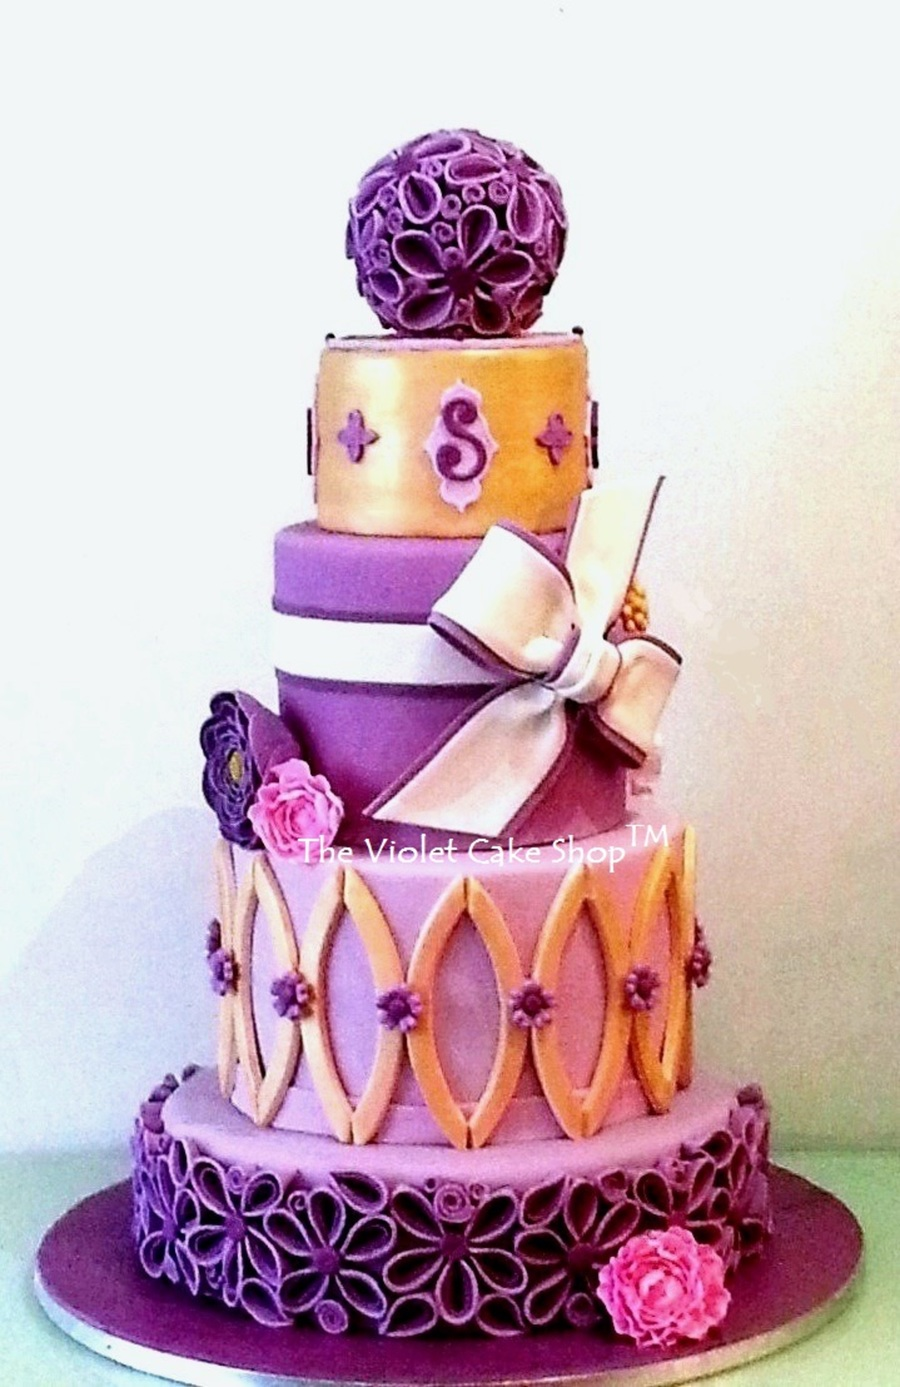 My First 4 Tier Wedding Cake - Gold & Purple - CakeCentral.com